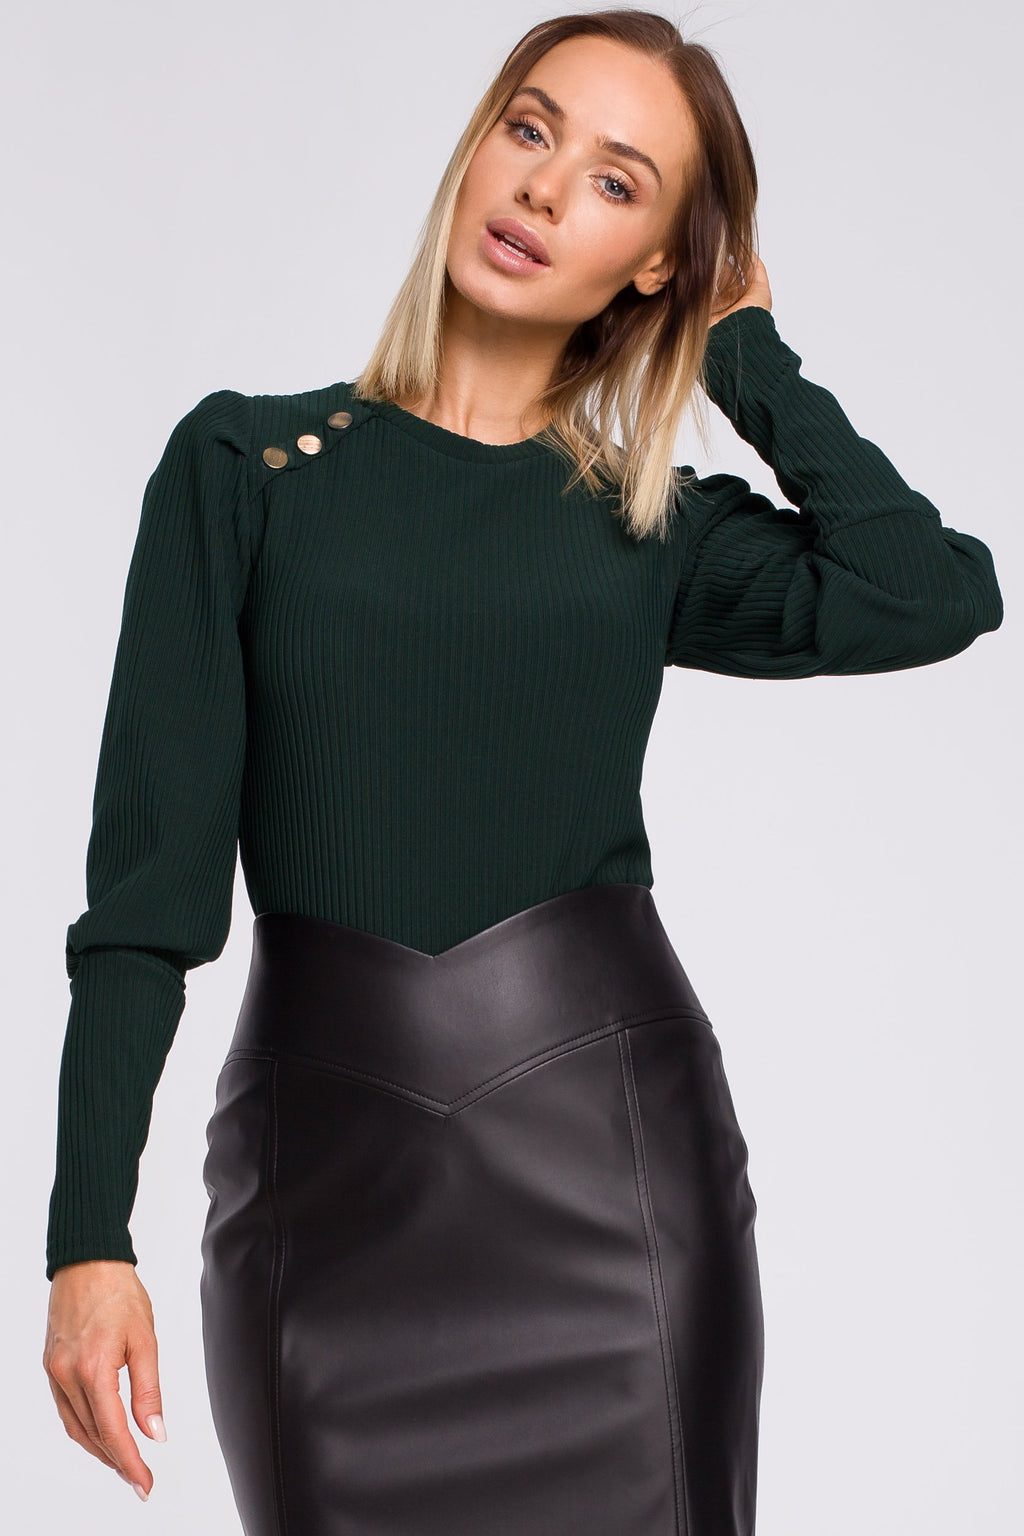 Green Ribbed Blouse With Decorative Buttons - So Chic Boutique